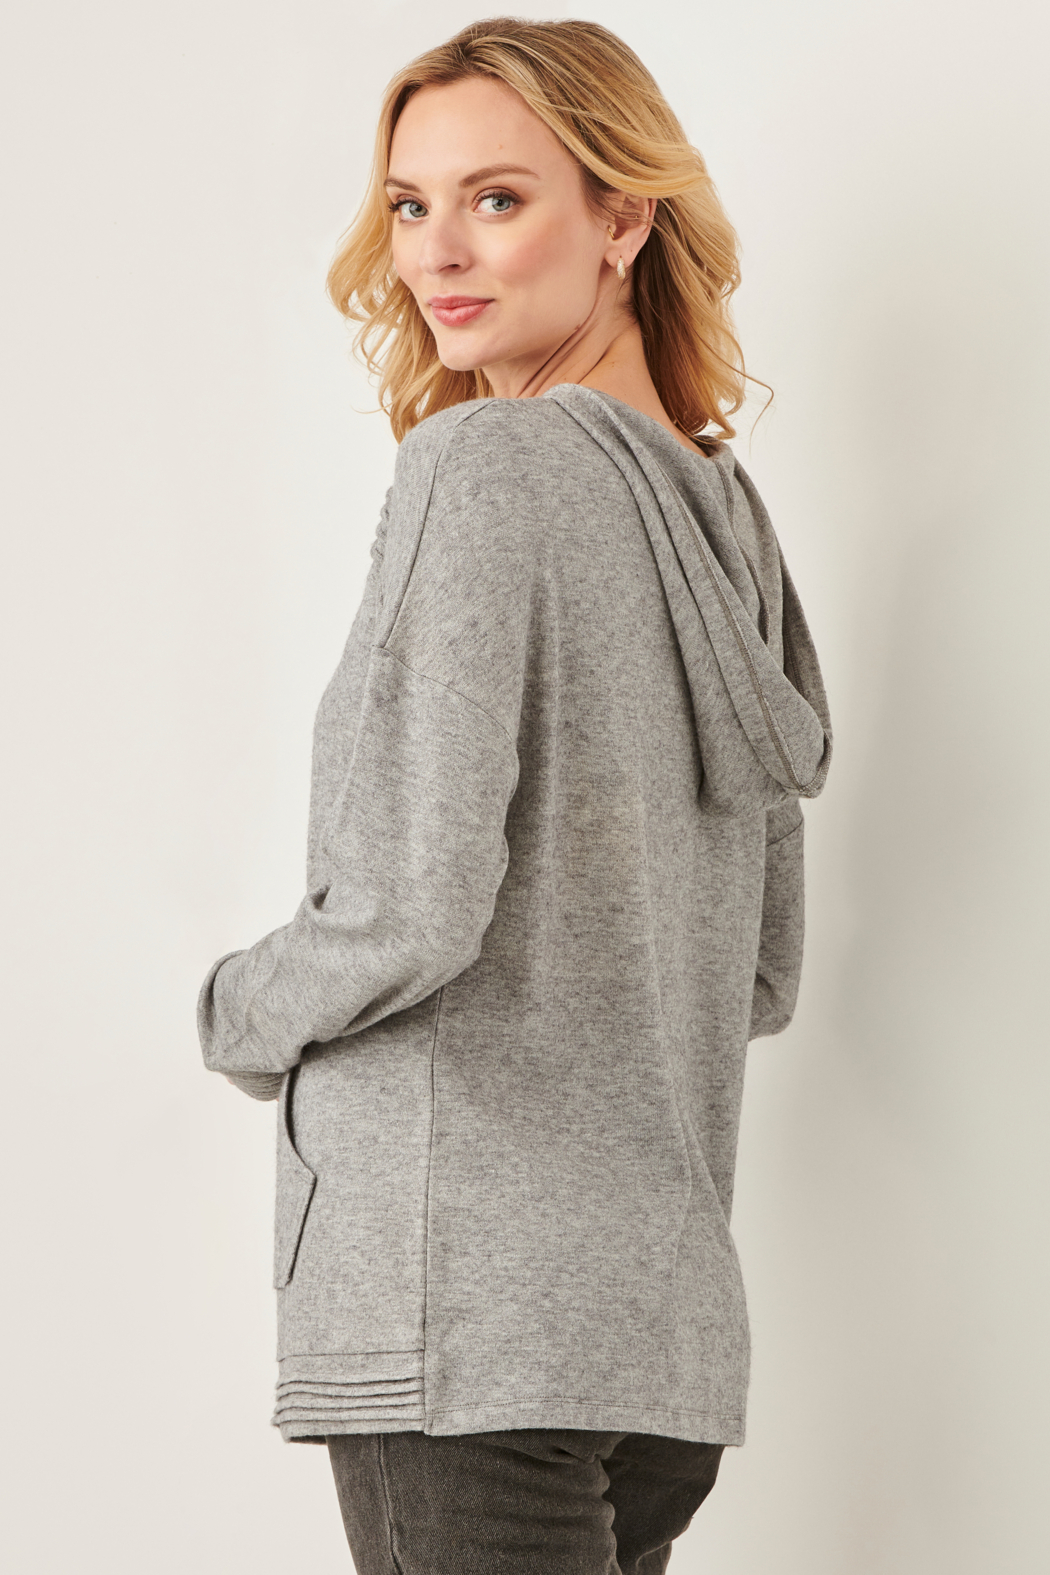 Charlie Paige Pleat Hoody Sweater - Front Full Image